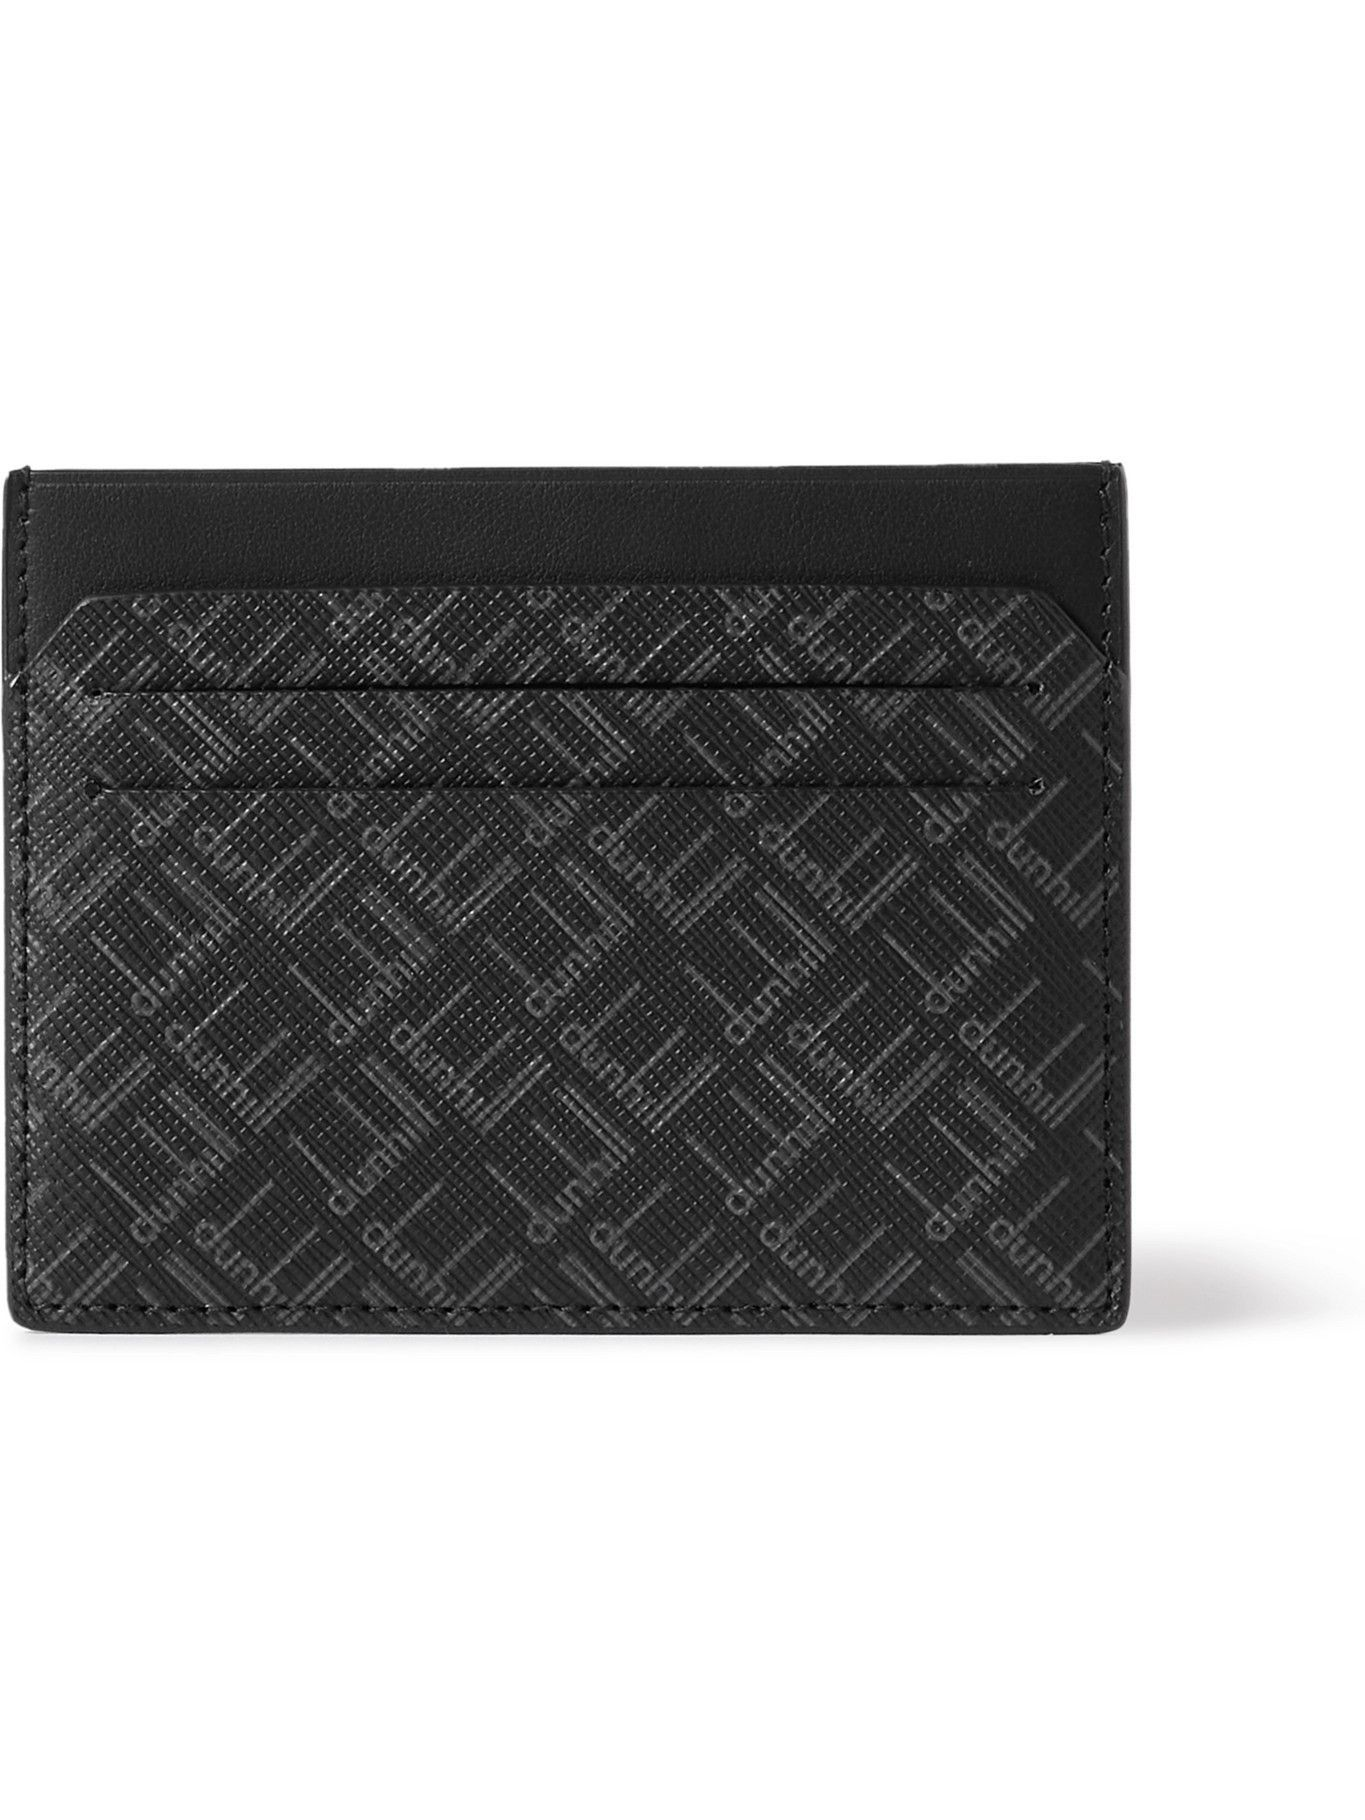 DUNHILL - Logo-Print Textured-Leather Cardholder